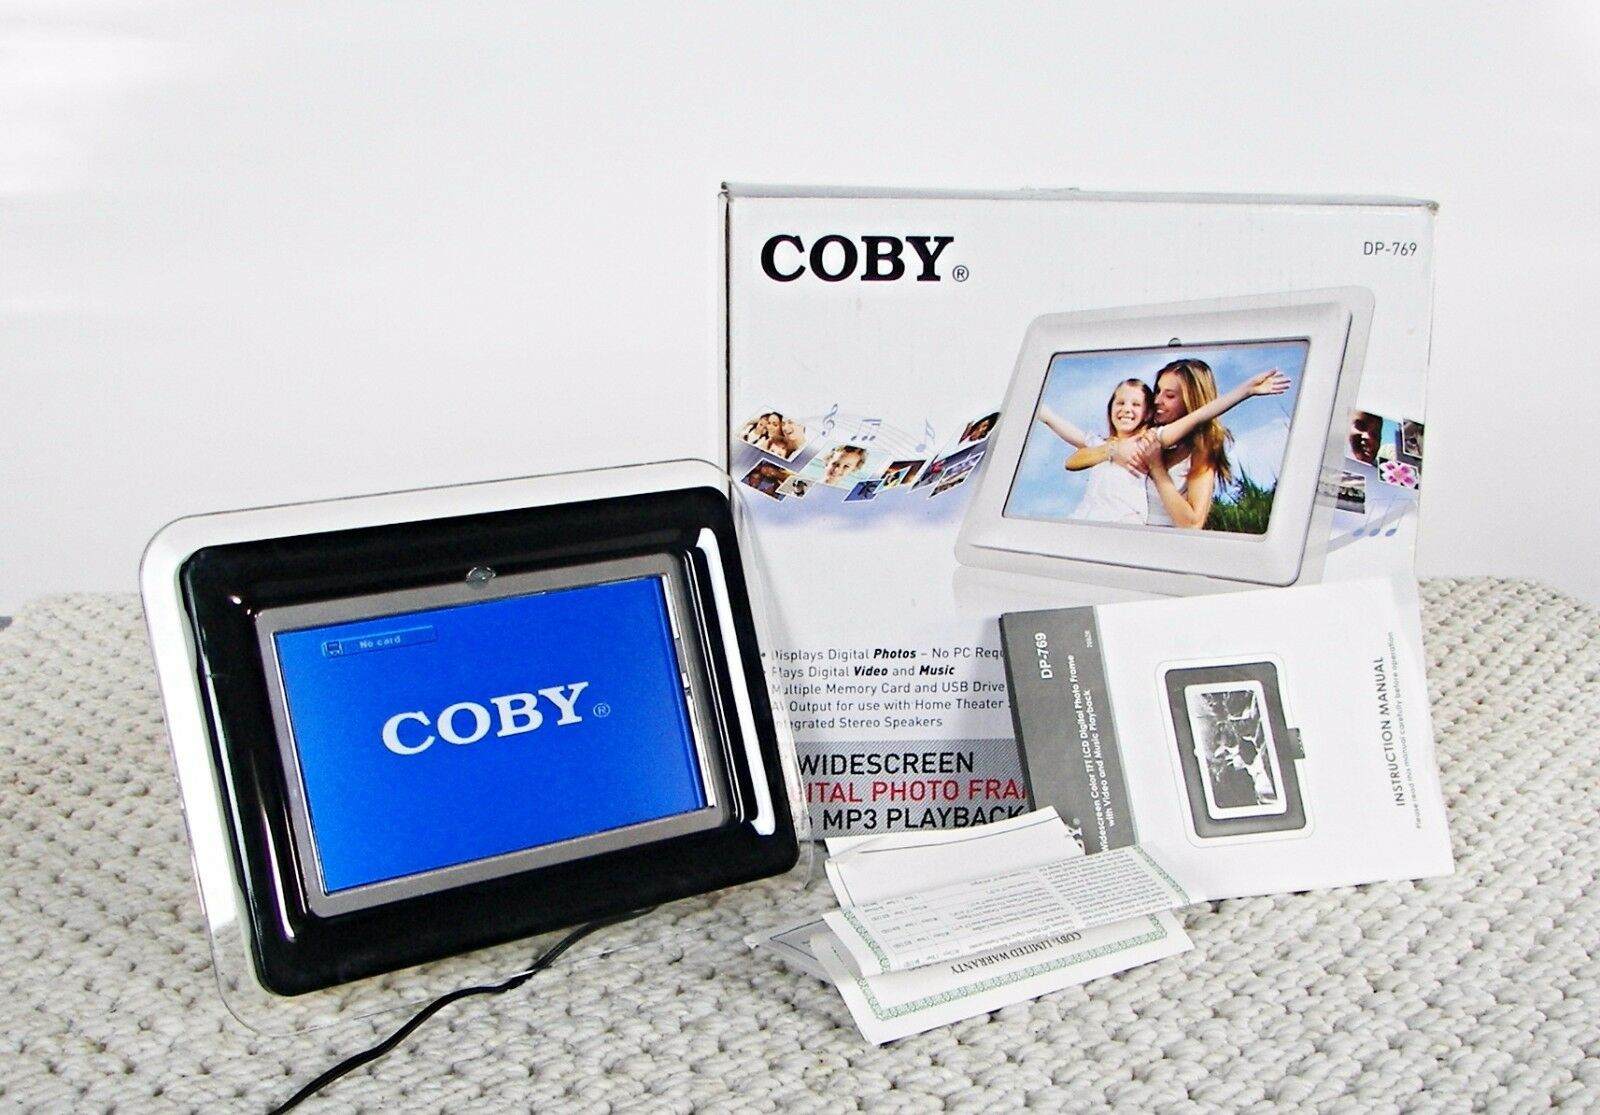 COBY DP-769 7-INCH Widescreen Digital Photo Frame with MP3 Player ...